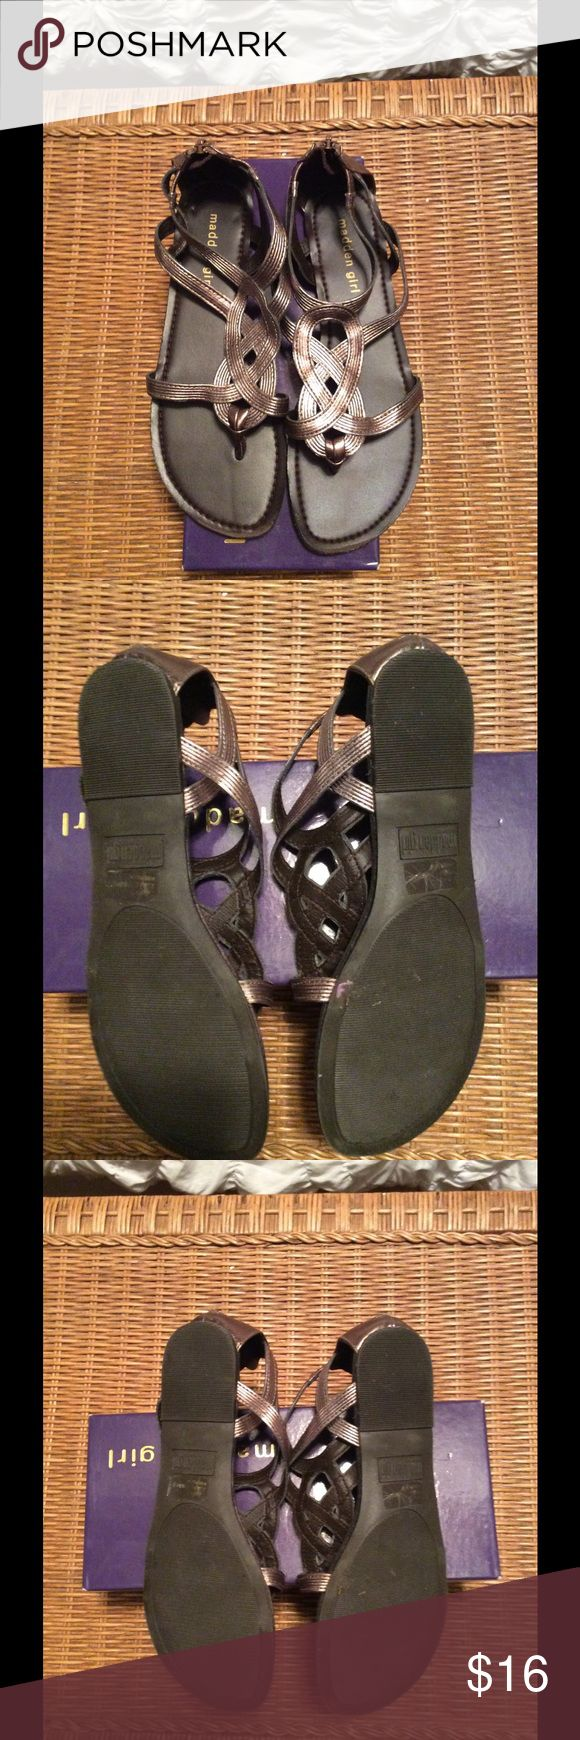 Madden Girl - pewter sandals - size 7 Madden Girl - pewter sandals - size 7 - in Excellent condition - like new!! Madden Girl Shoes Sandals